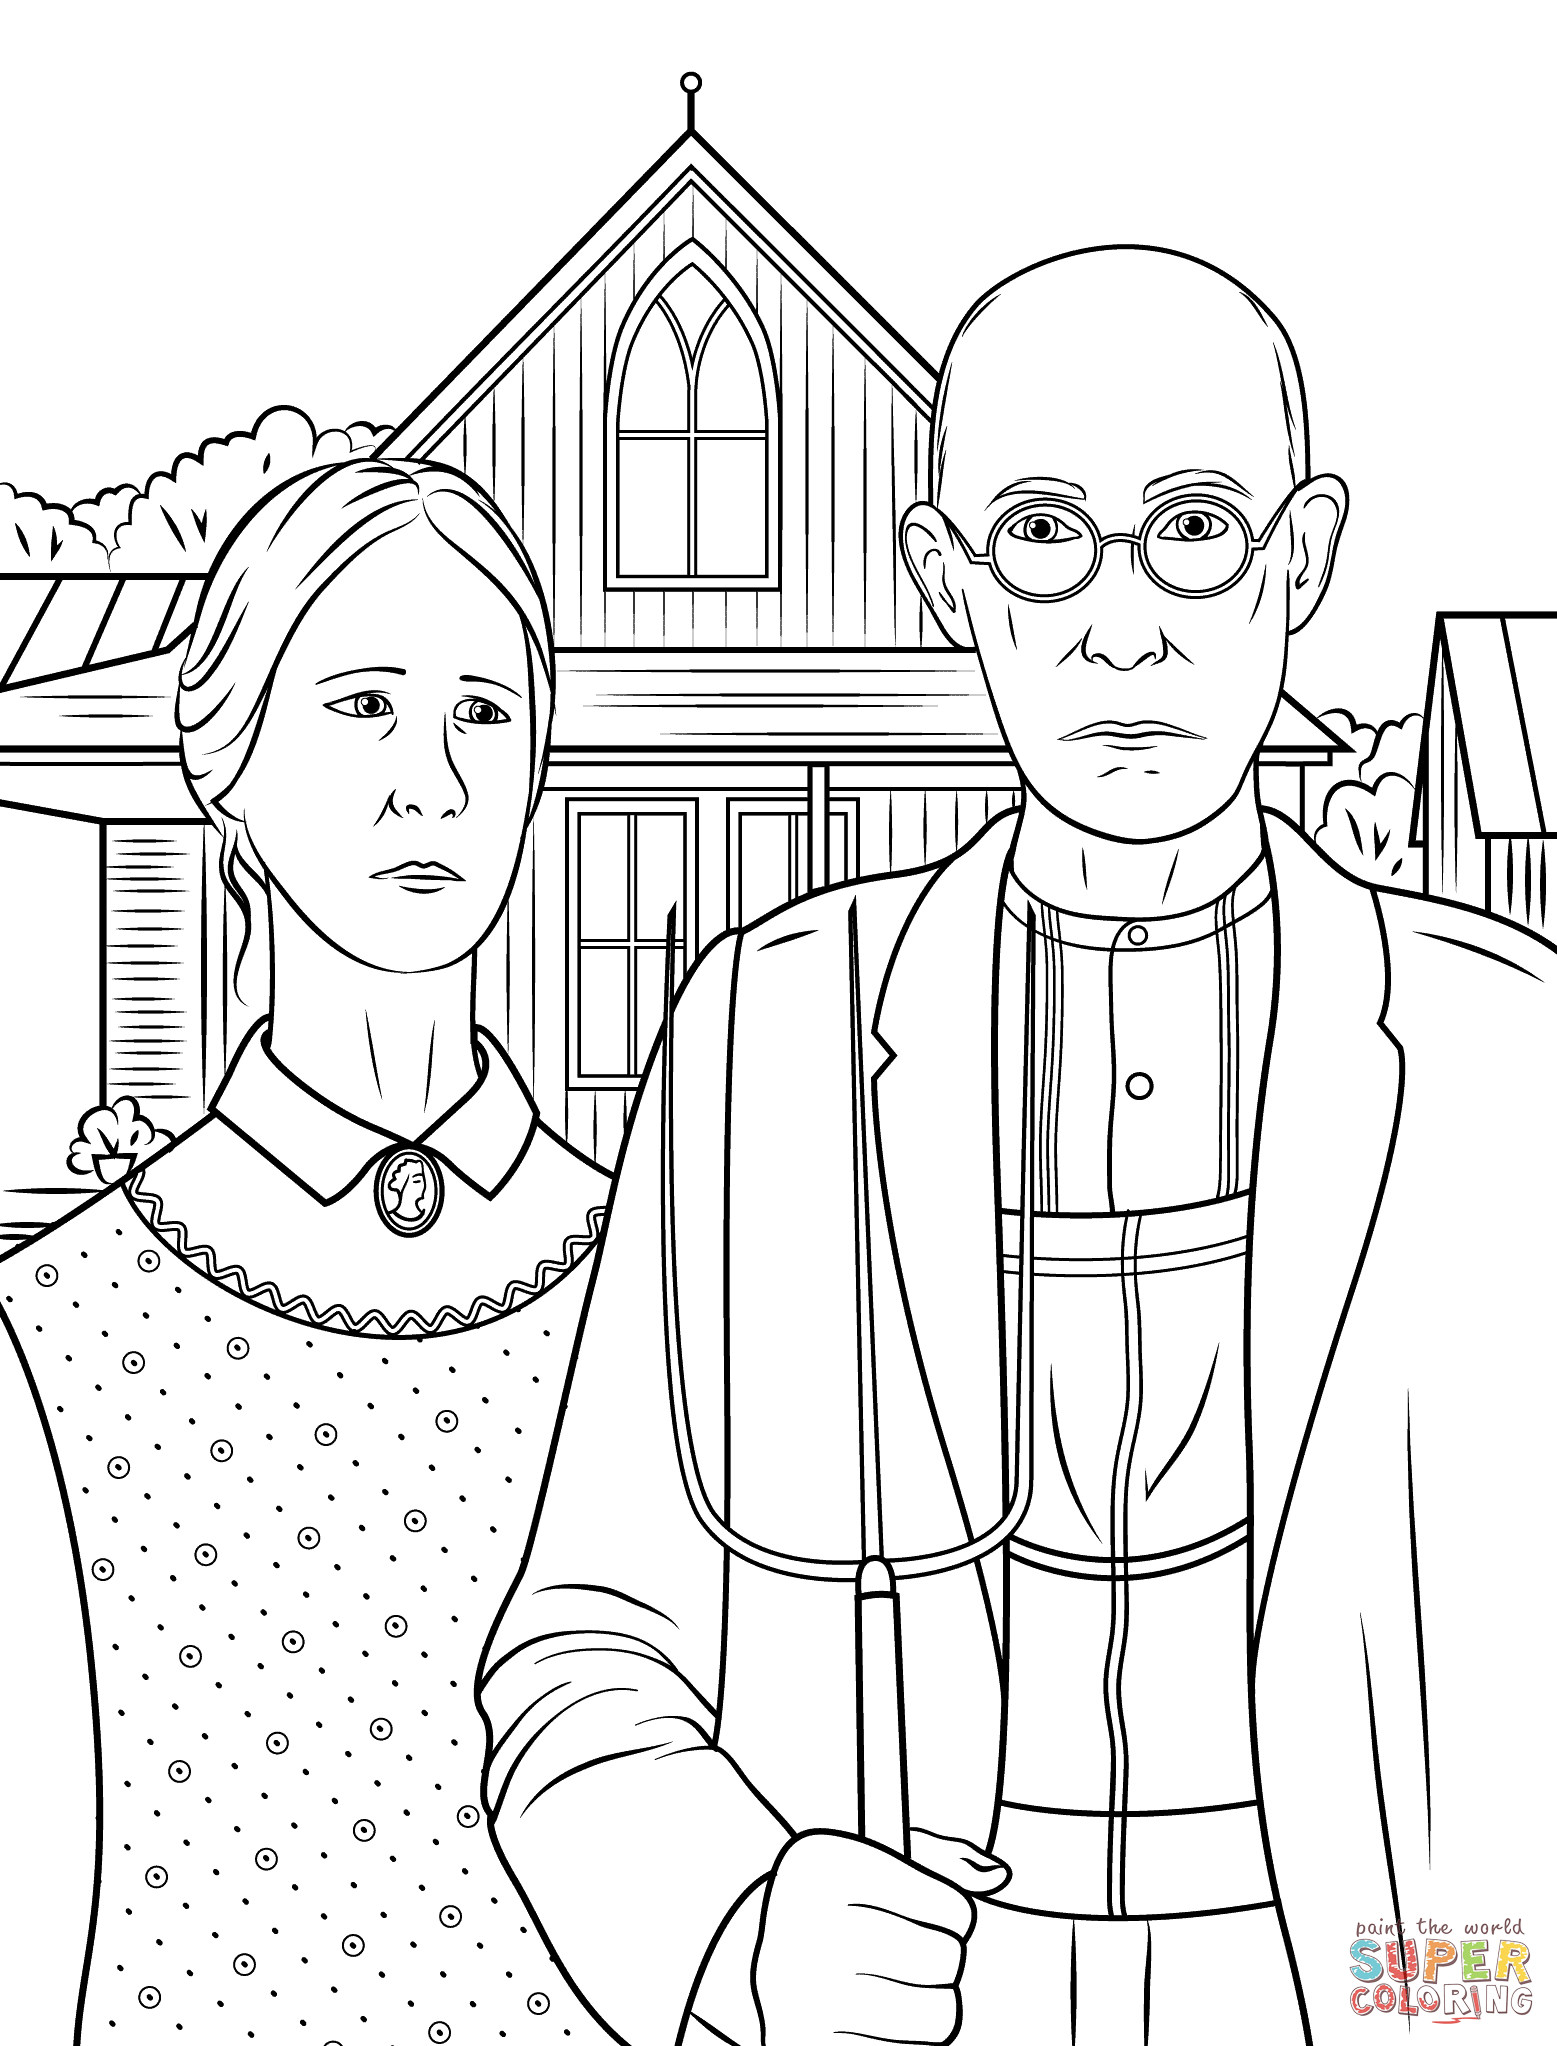 famous painting coloring pages gothic coloring download gothic coloring for free 2019 famous painting pages coloring